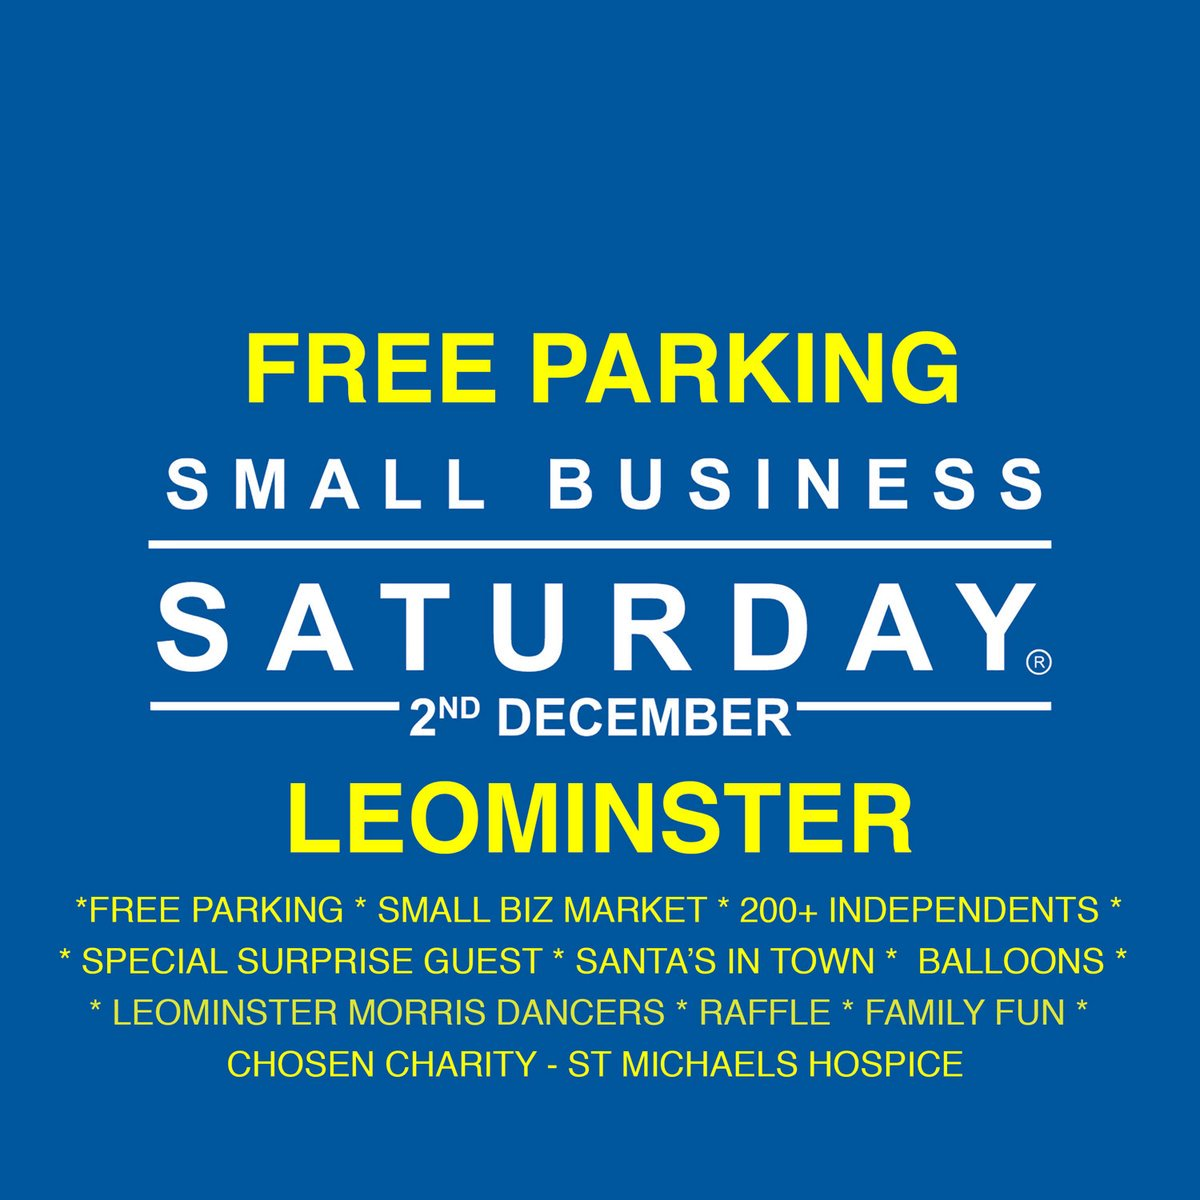 #marcheshour we are looking forward to #smallbusinesssaturday 2nd Dec. #Freeparking #livemusic @VocalsbyKeri. Lot of #promotions and #offers, #Leominhster is the place to be!!!<br>http://pic.twitter.com/qkIdzysR2U